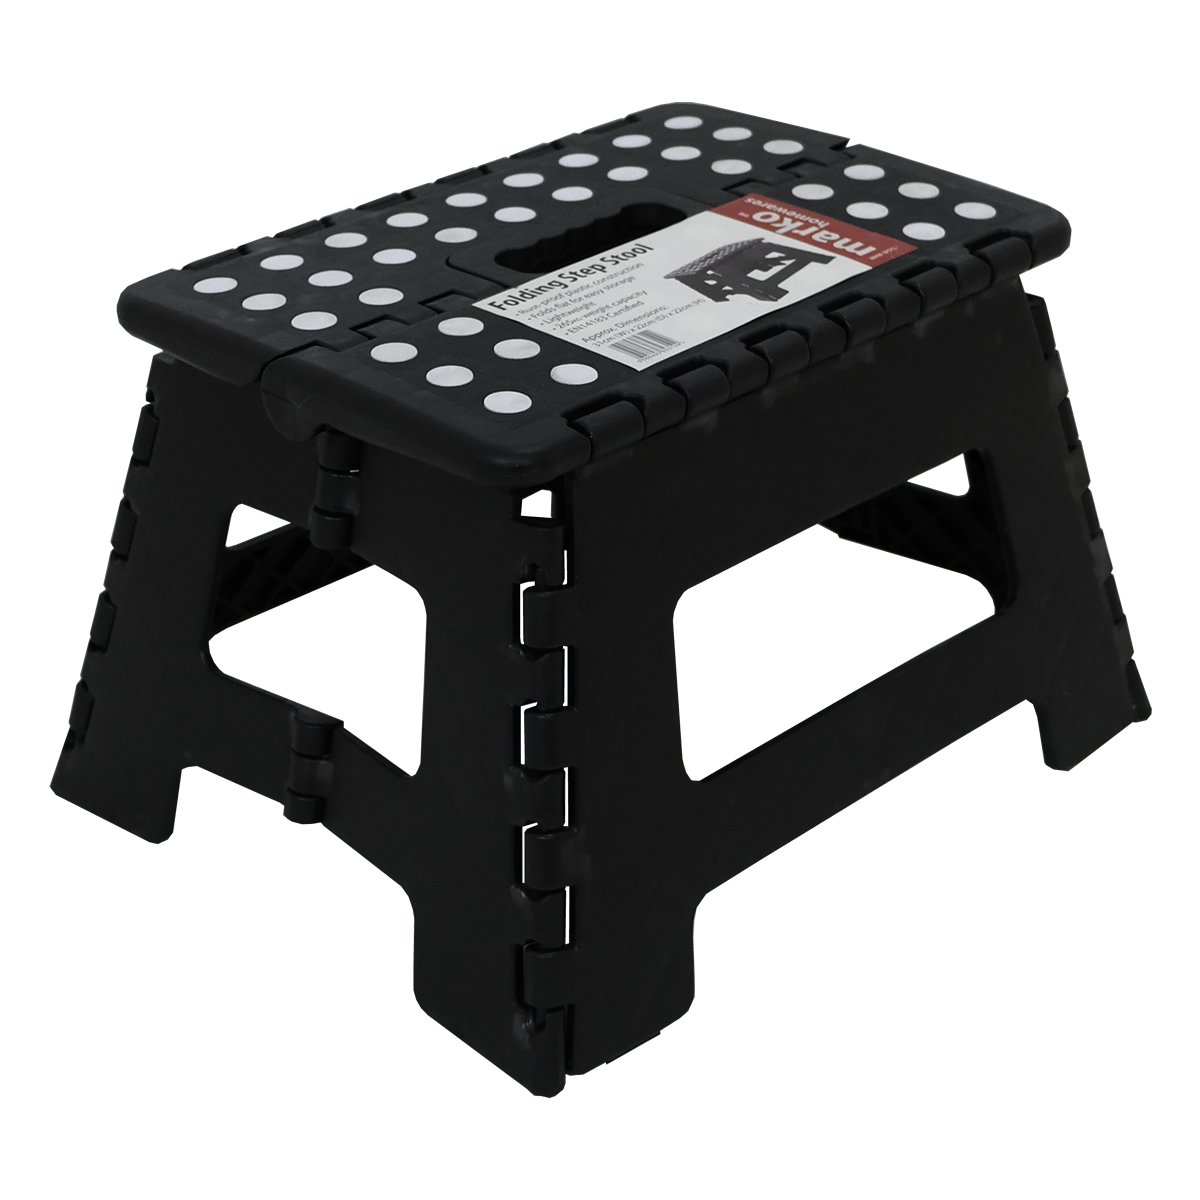 150KG Single Step Plastic Folding Step Up Stools Collapsible Foldaway Large Heavy Duty Amazon.co.uk Sports u0026 Outdoors  sc 1 st  Amazon UK & 150KG Single Step Plastic Folding Step Up Stools Collapsible ... islam-shia.org